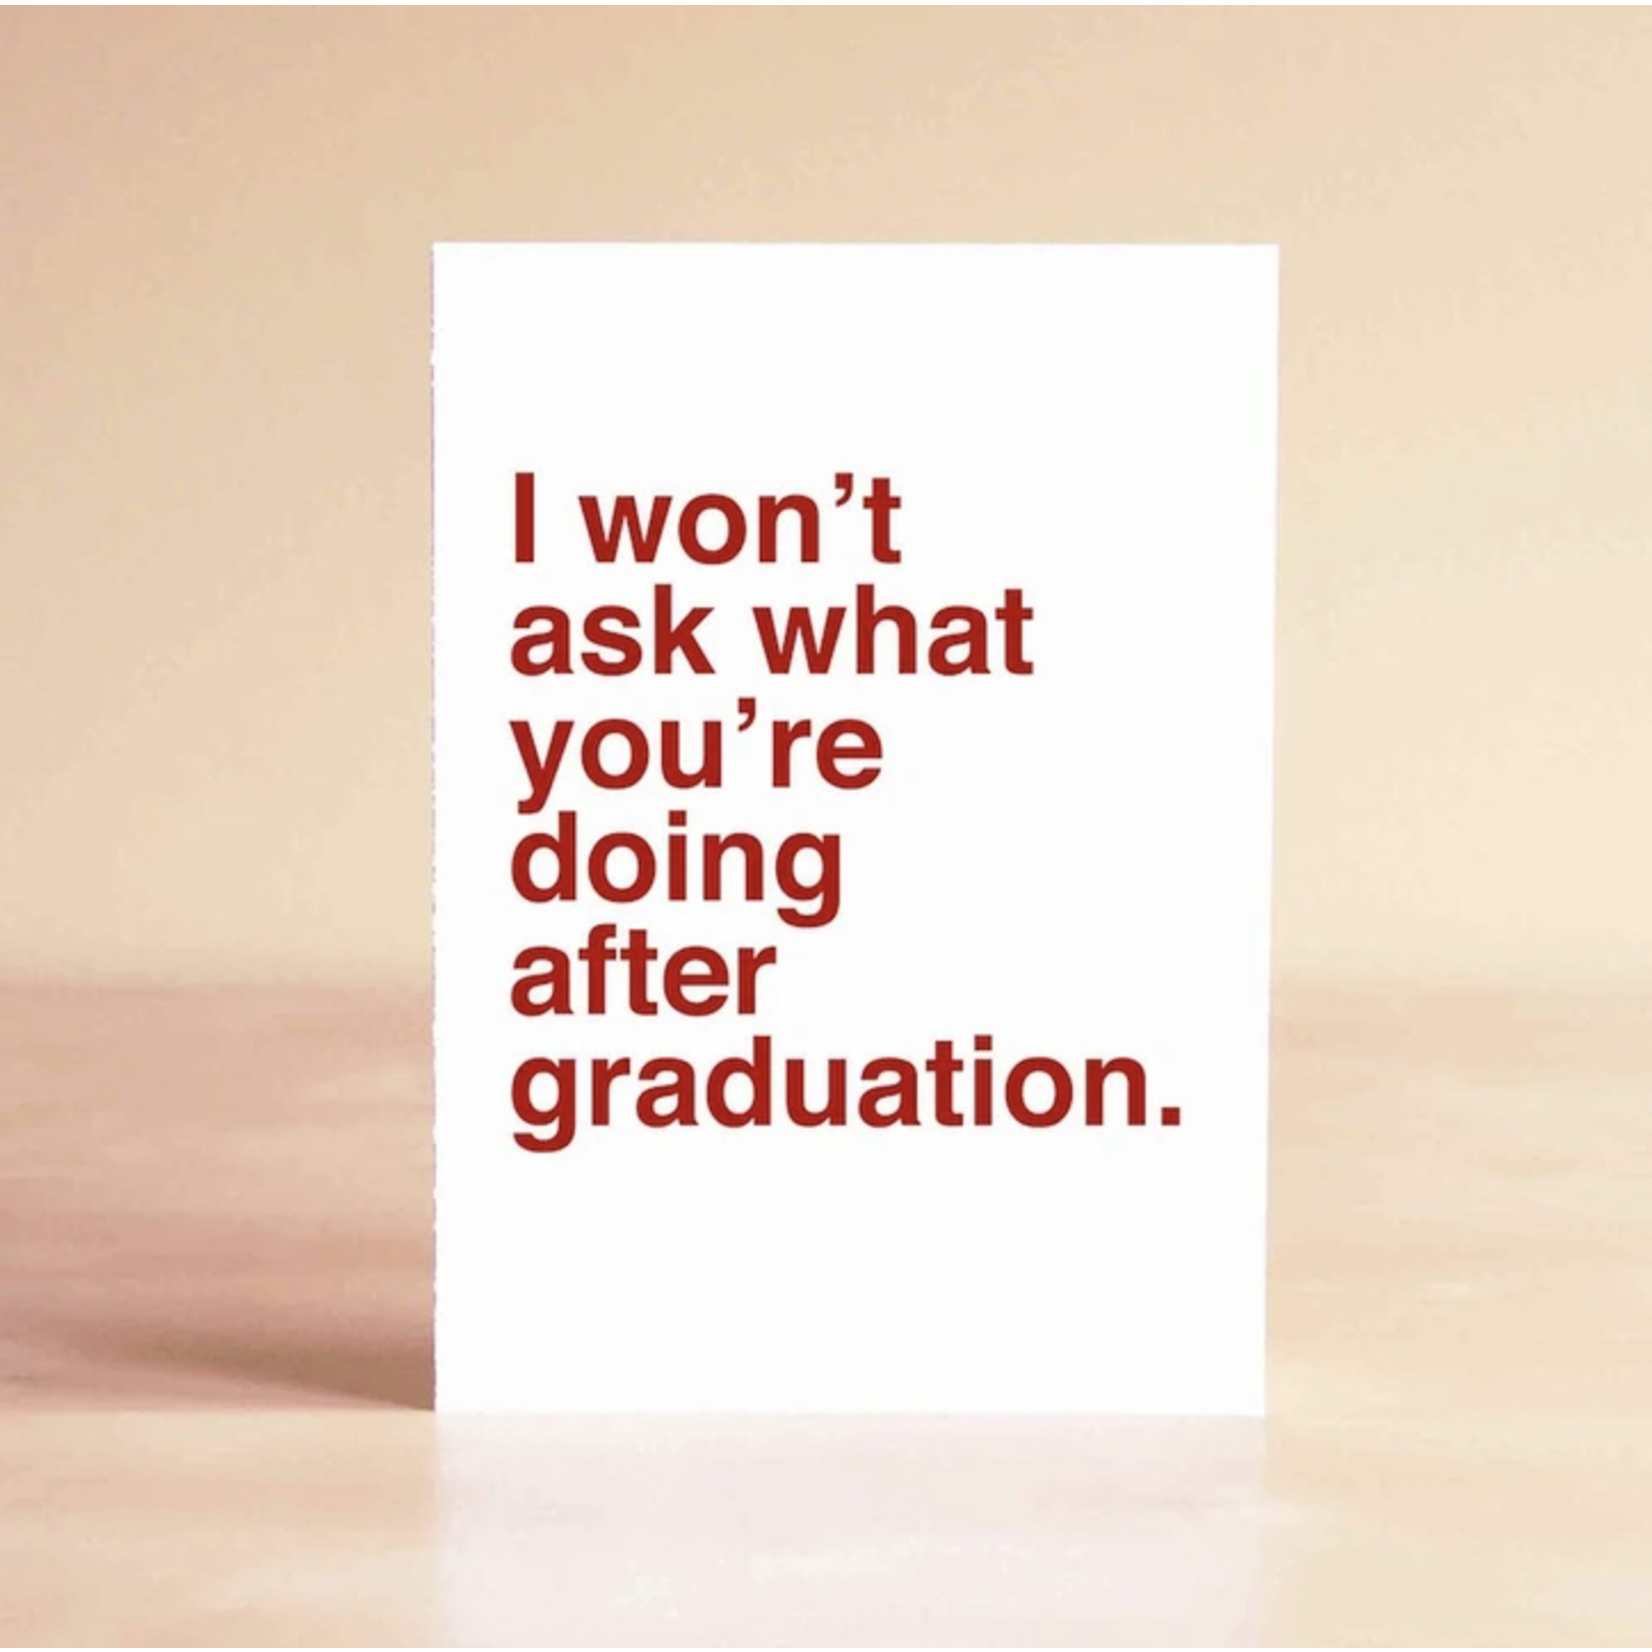 Sad Shop Won't Ask What You're Doing After Graduation Greeting Card